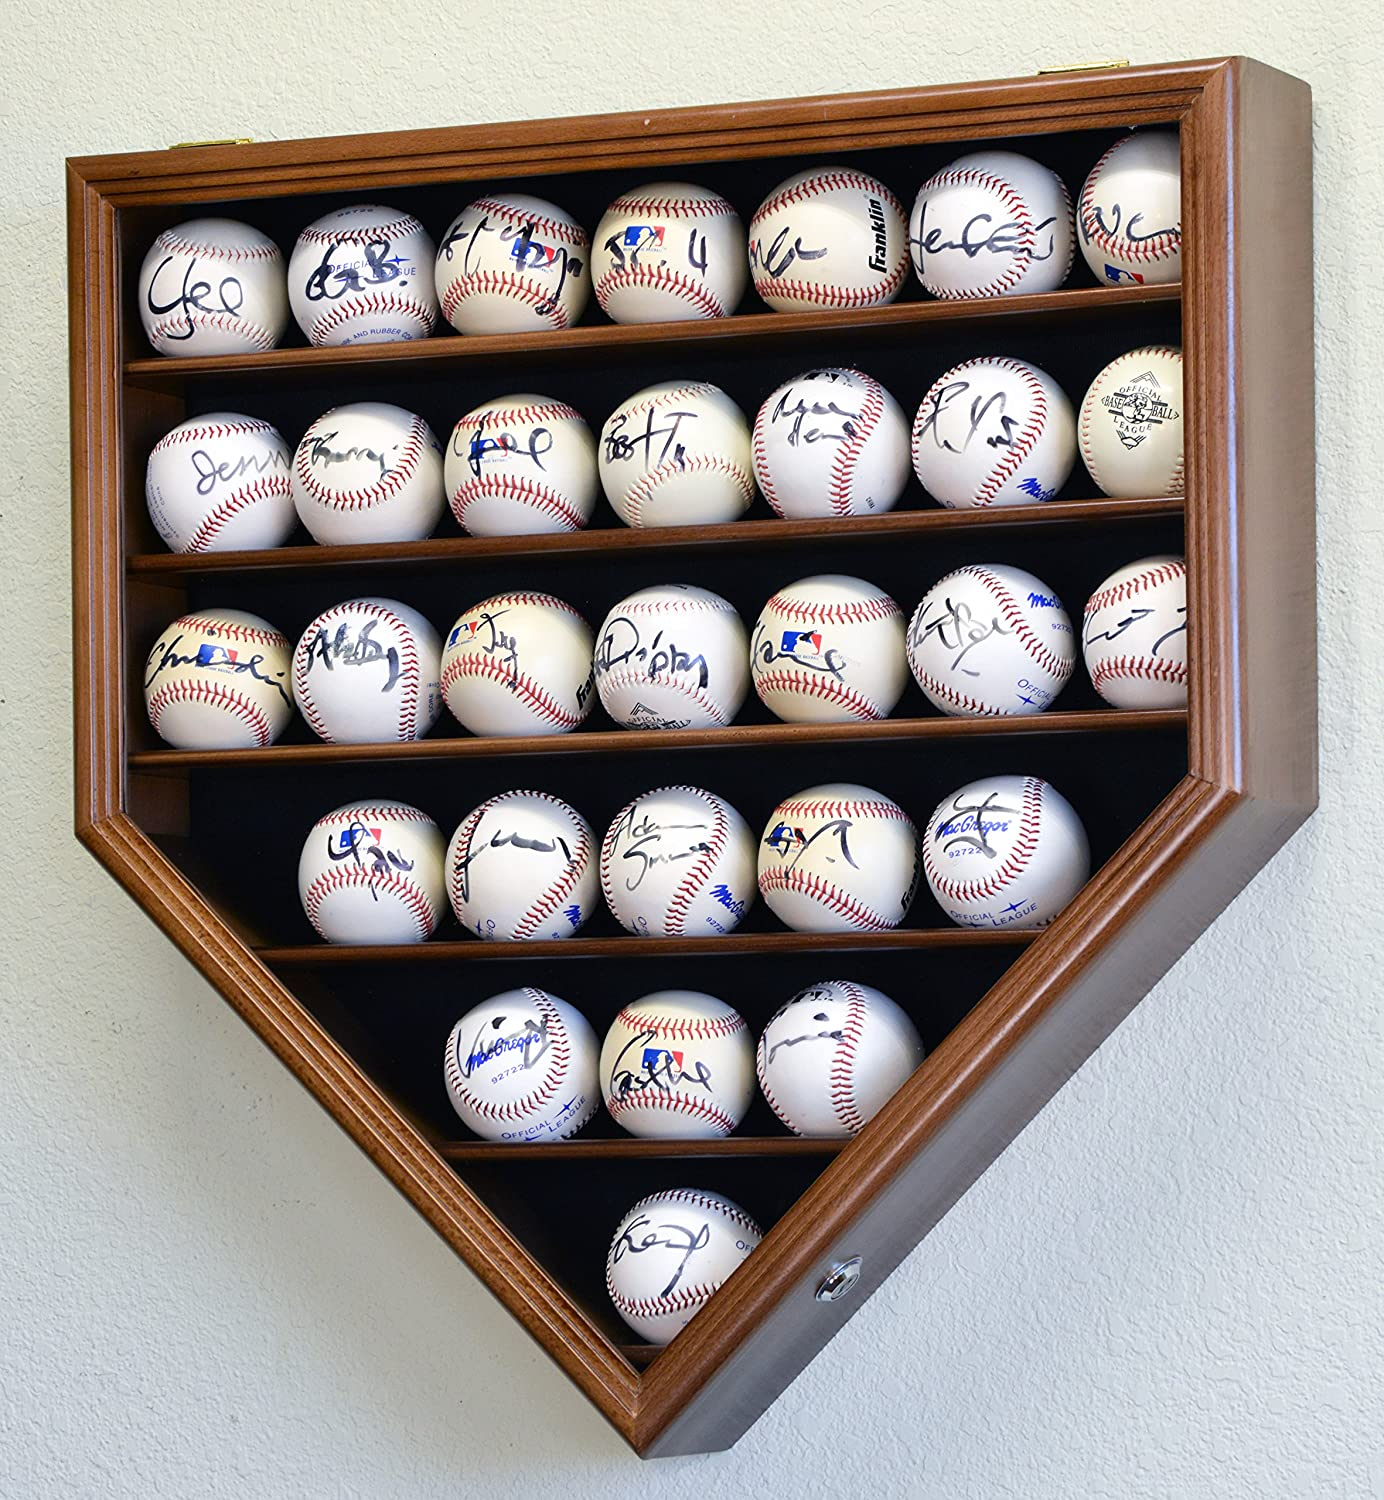 30 Baseball Ball Display Case Cabinet Holder Rack Home Plate Shaped w/98% UV Protection- Lockable -Walnut